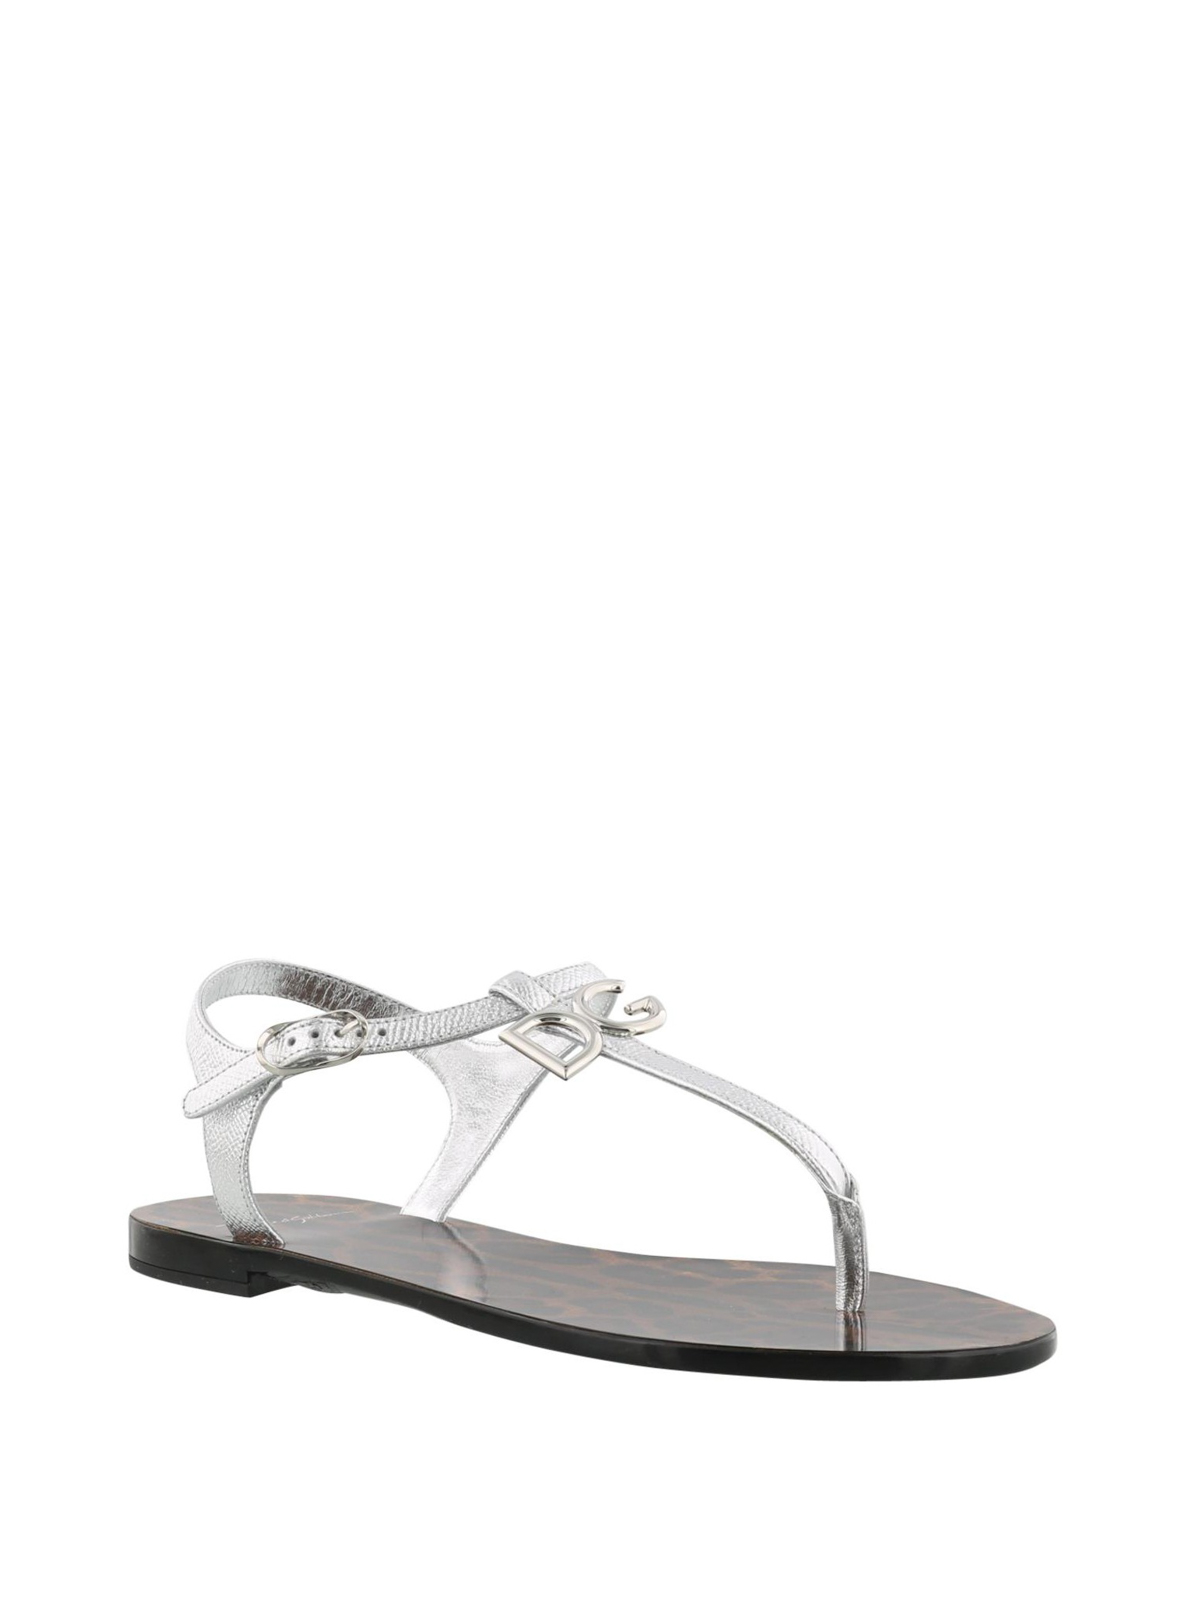 d9b5536cc85bb8 DOLCE   GABBANA  sandals online - Metallic leather thong flat sandals